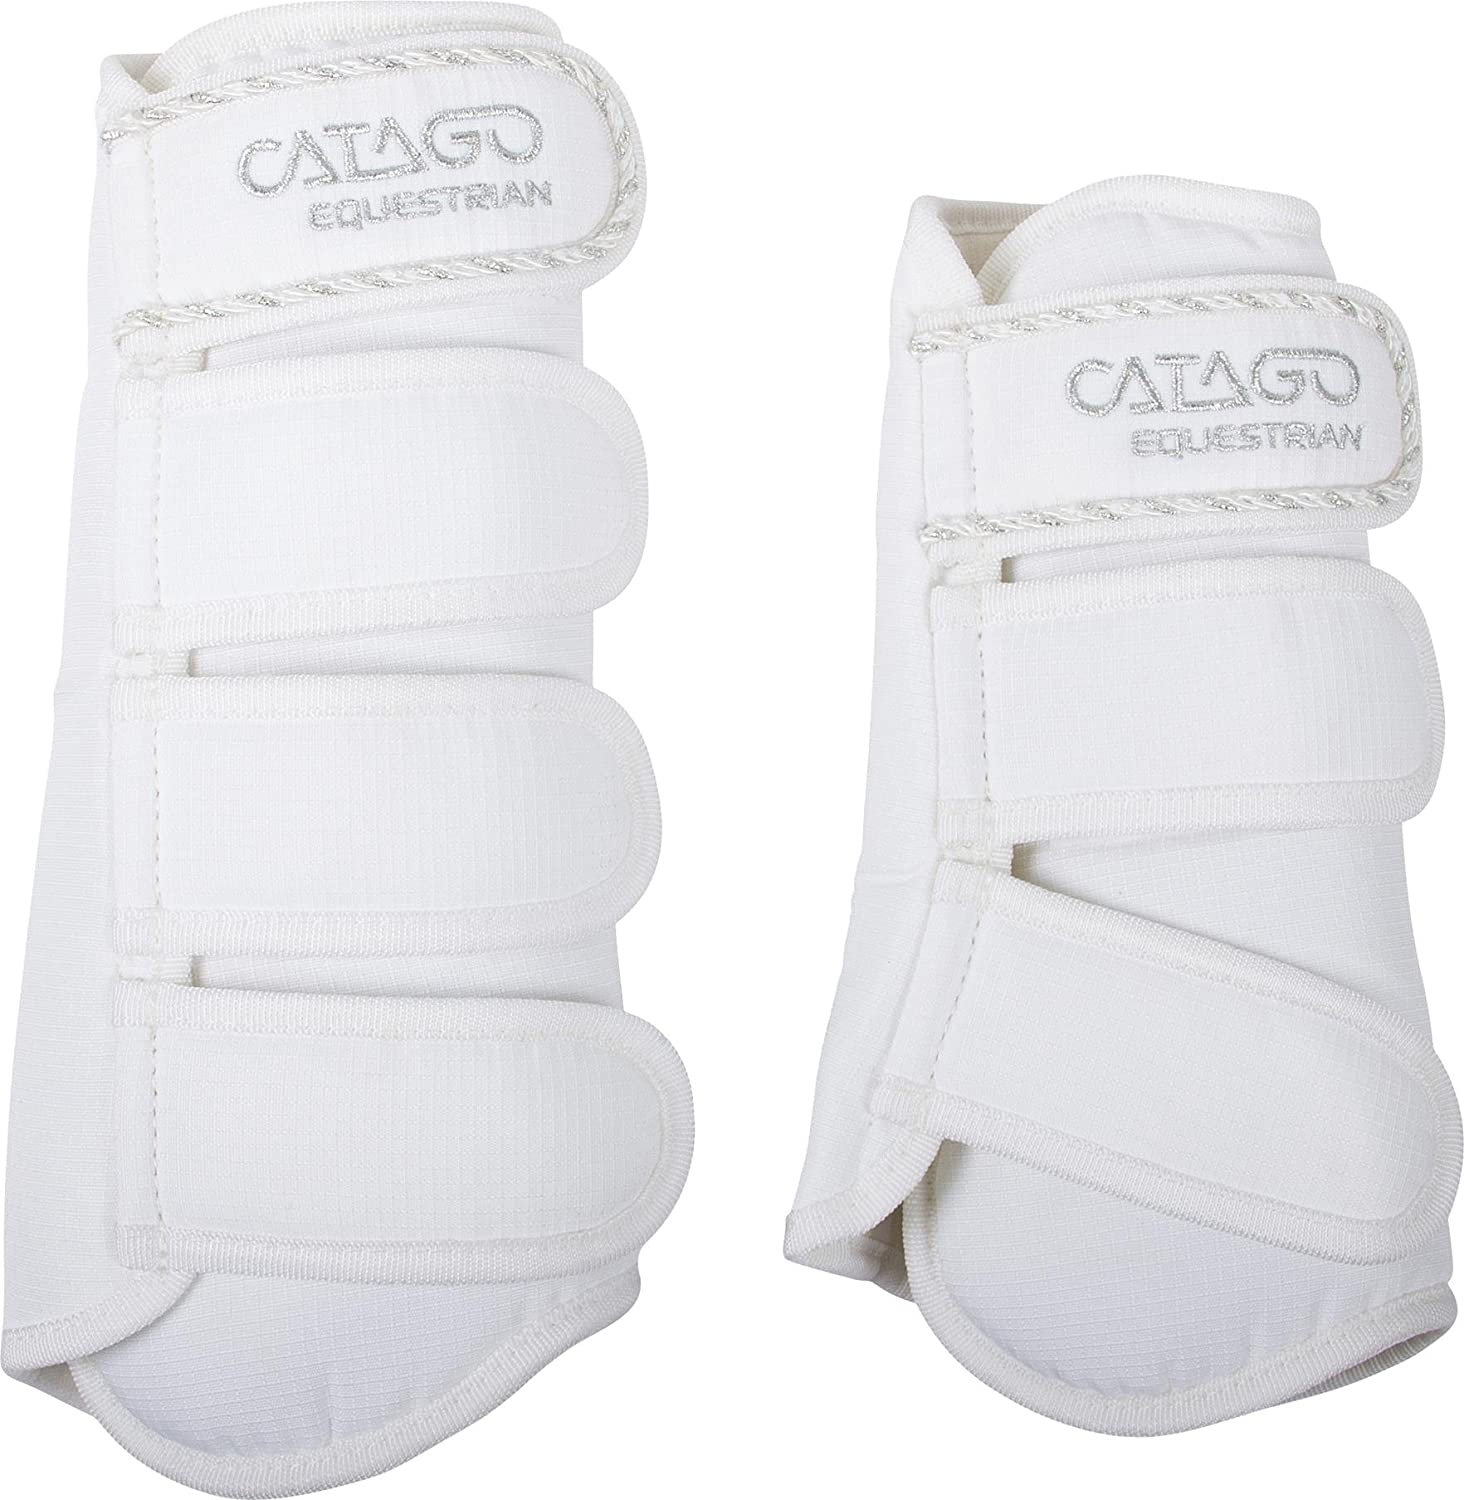 CATAGO Diamond Series Dr. Full Boots